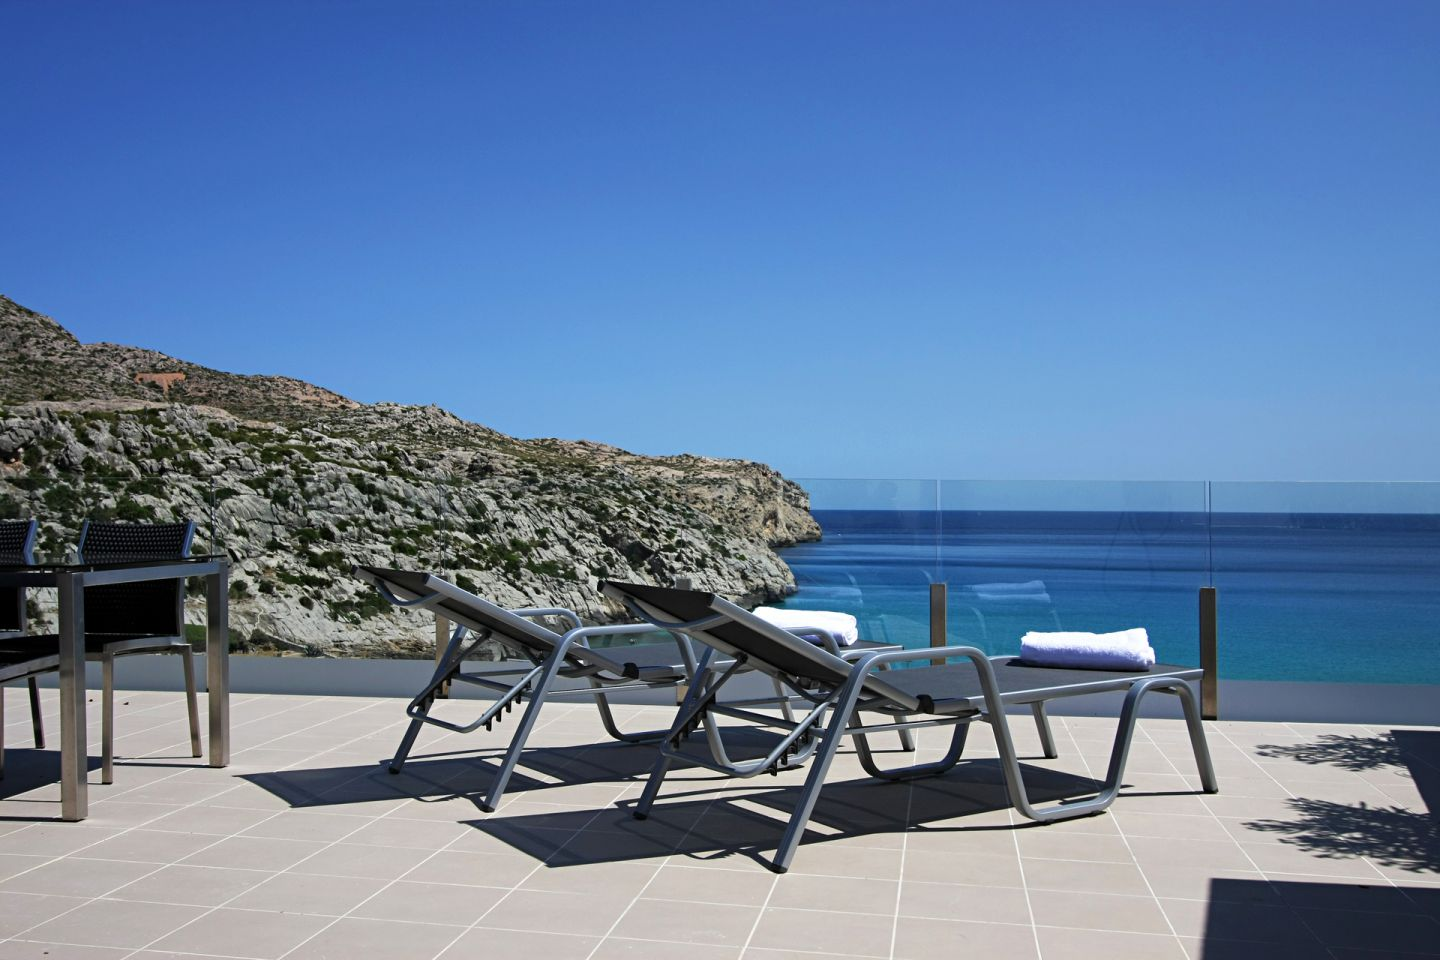 2 Bed Penthouse for sale in Cala San Vicente 0